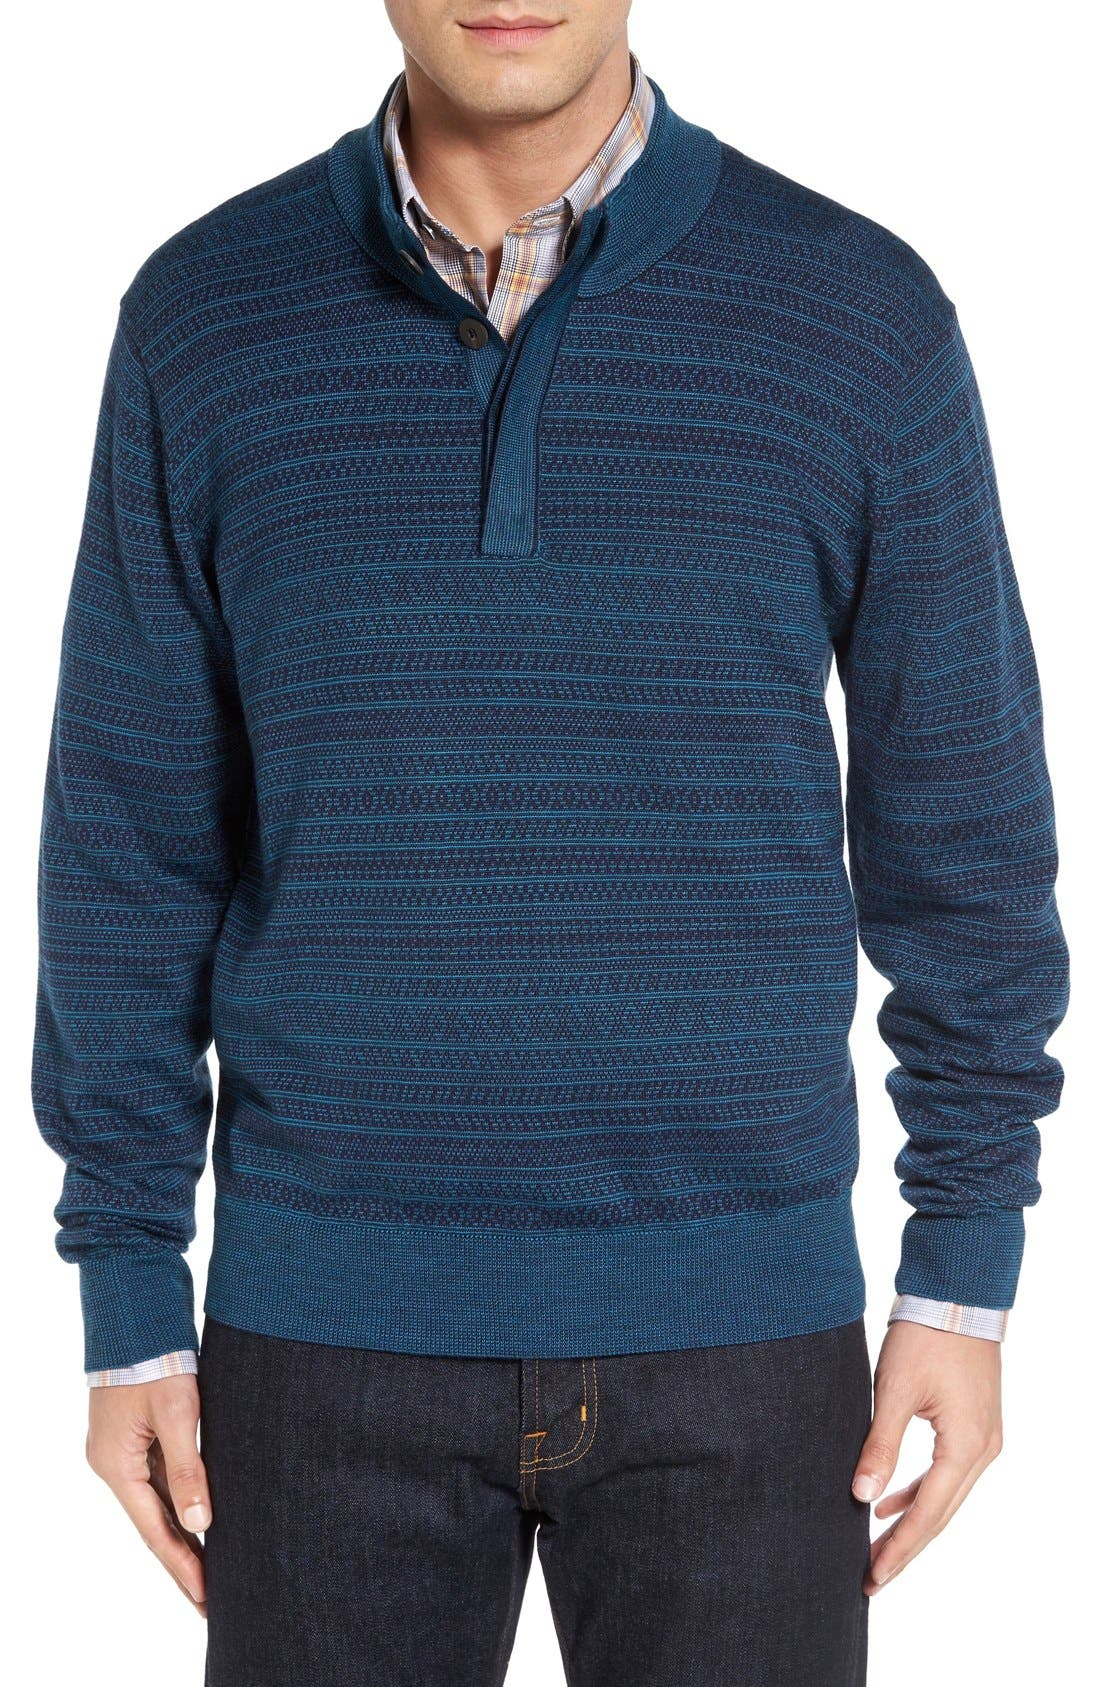 'Douglas Forest' Jacquard Wool Blend Sweater,                         Main,                         color, Liberty Navy